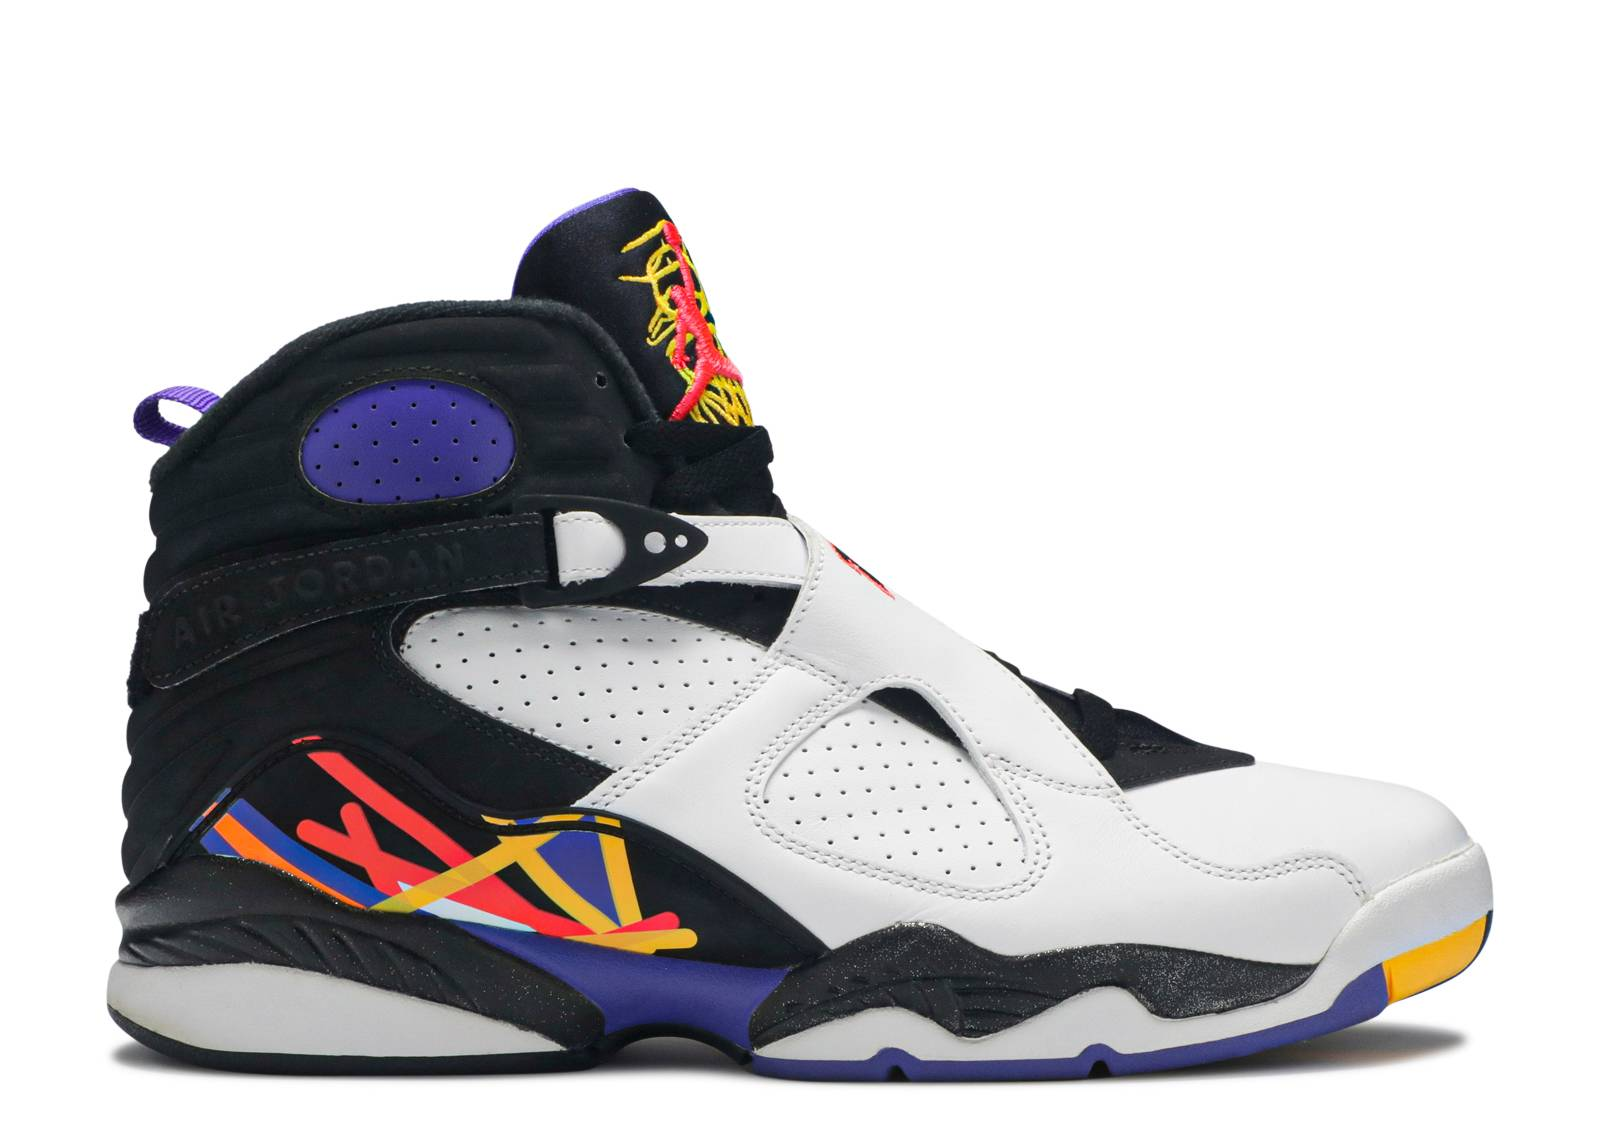 jordan shoes 8 retro 826767